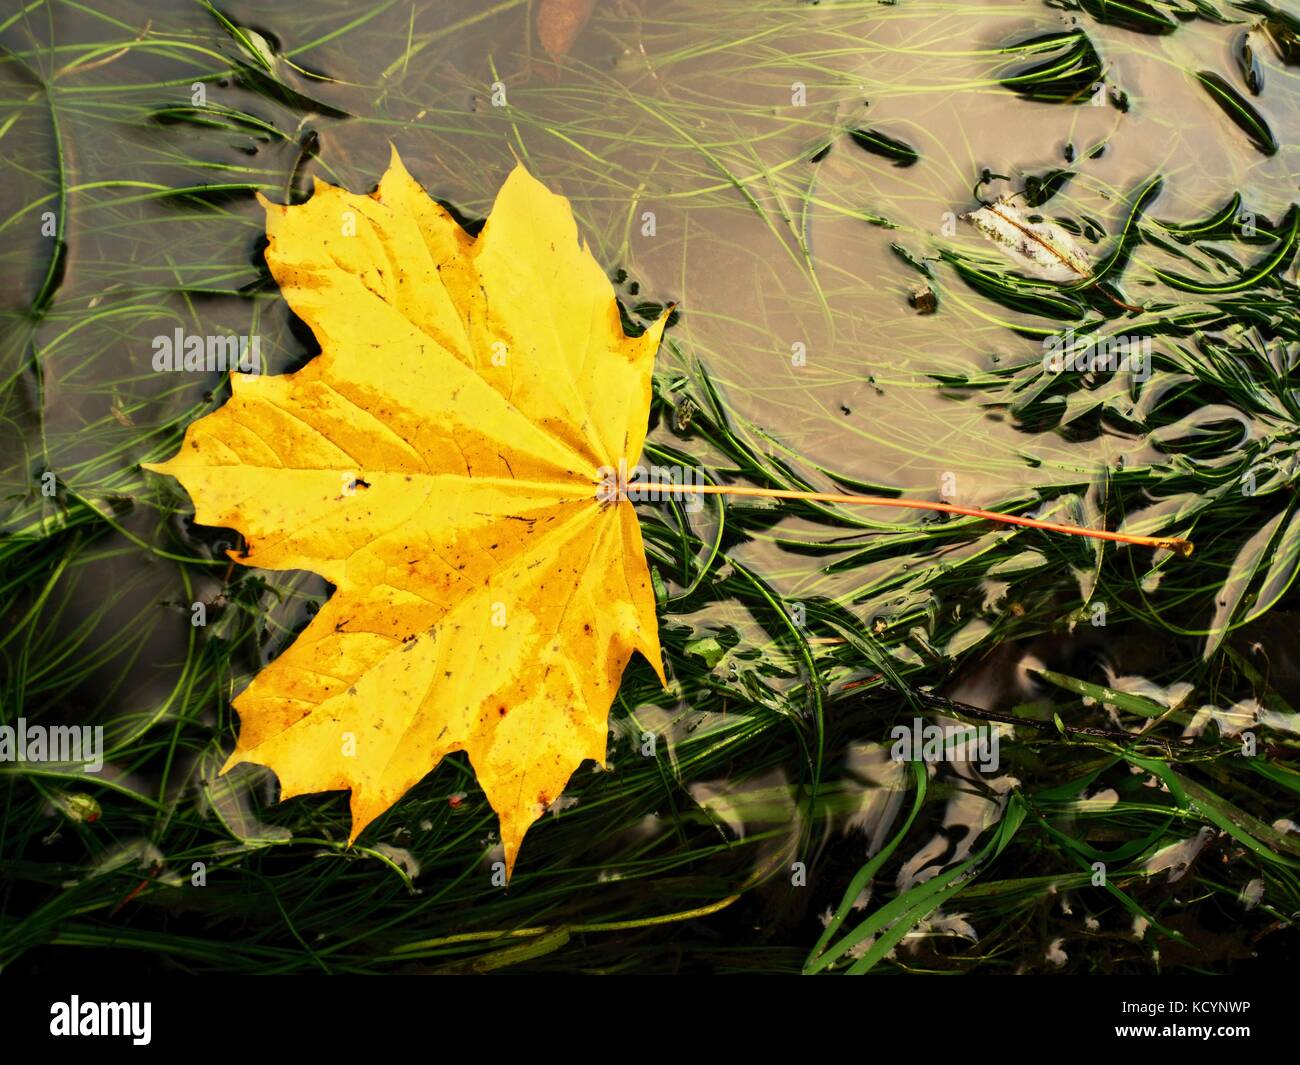 Fallen maple leaf in green algae. Rotten yellow orange dotted maple leaf in cold water of rapids. Colorful autumn - Stock Image